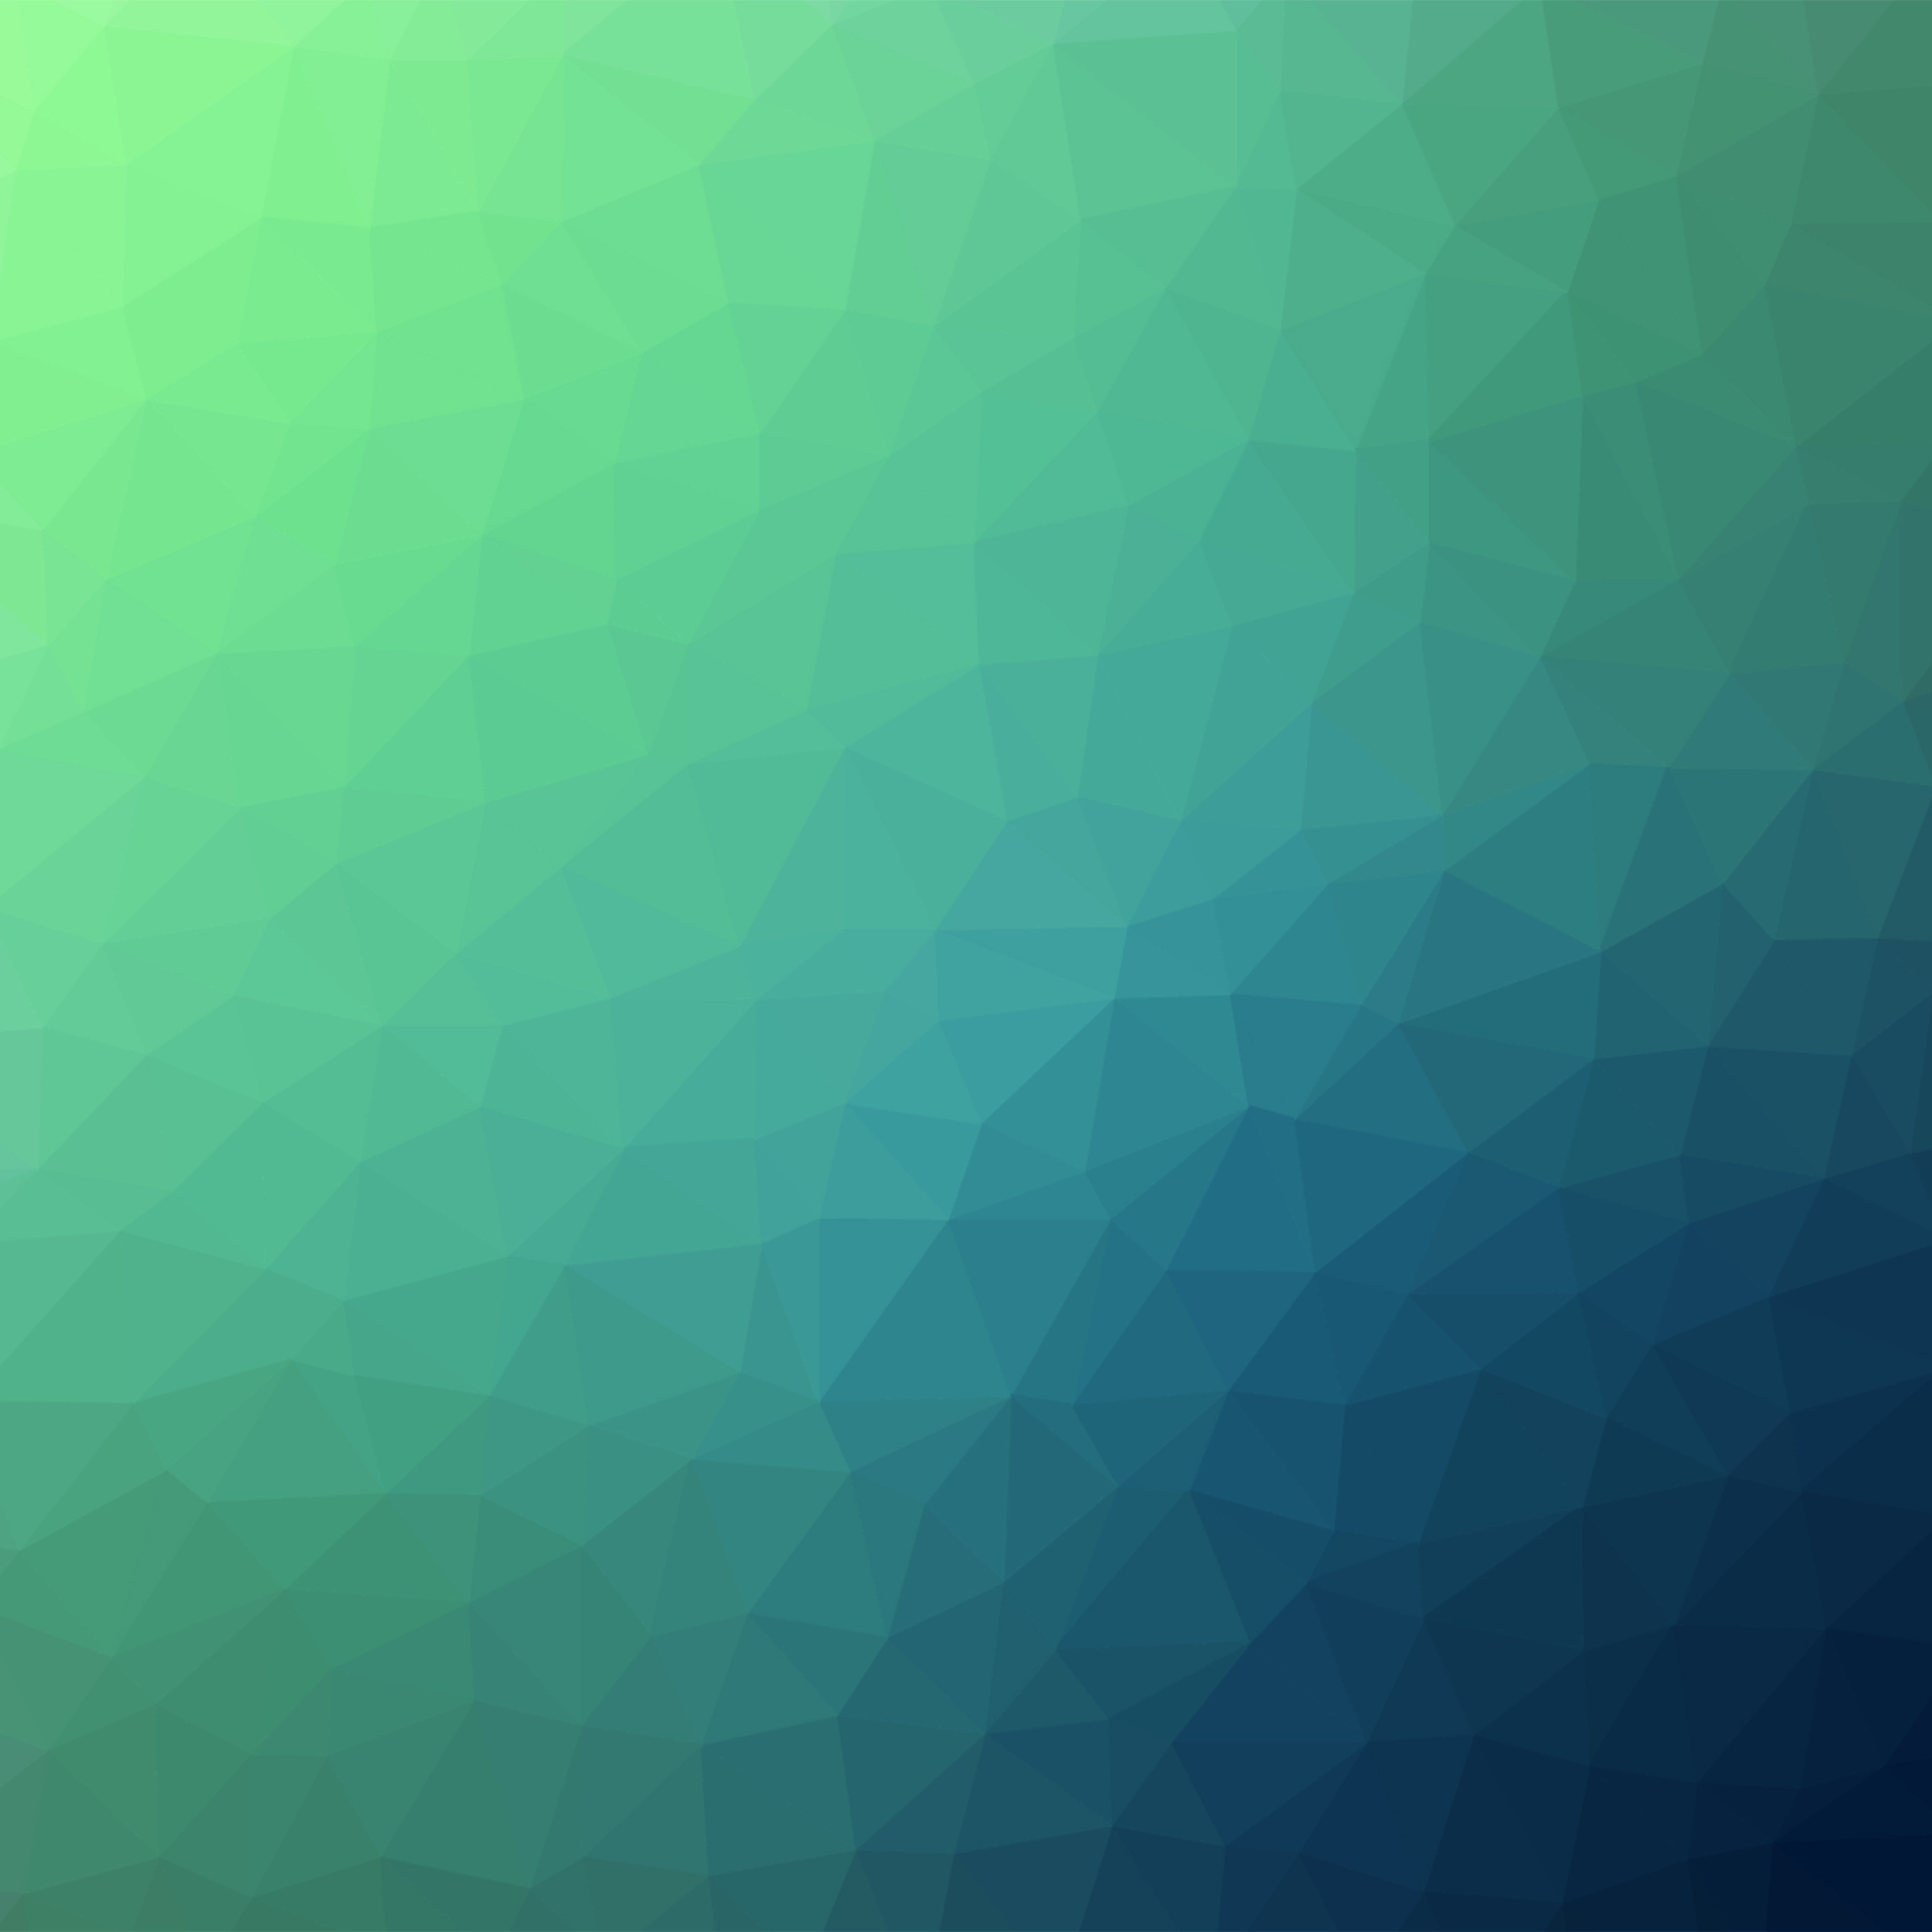 Green-inspired Wallpapers For IPad And IPhone XS Max